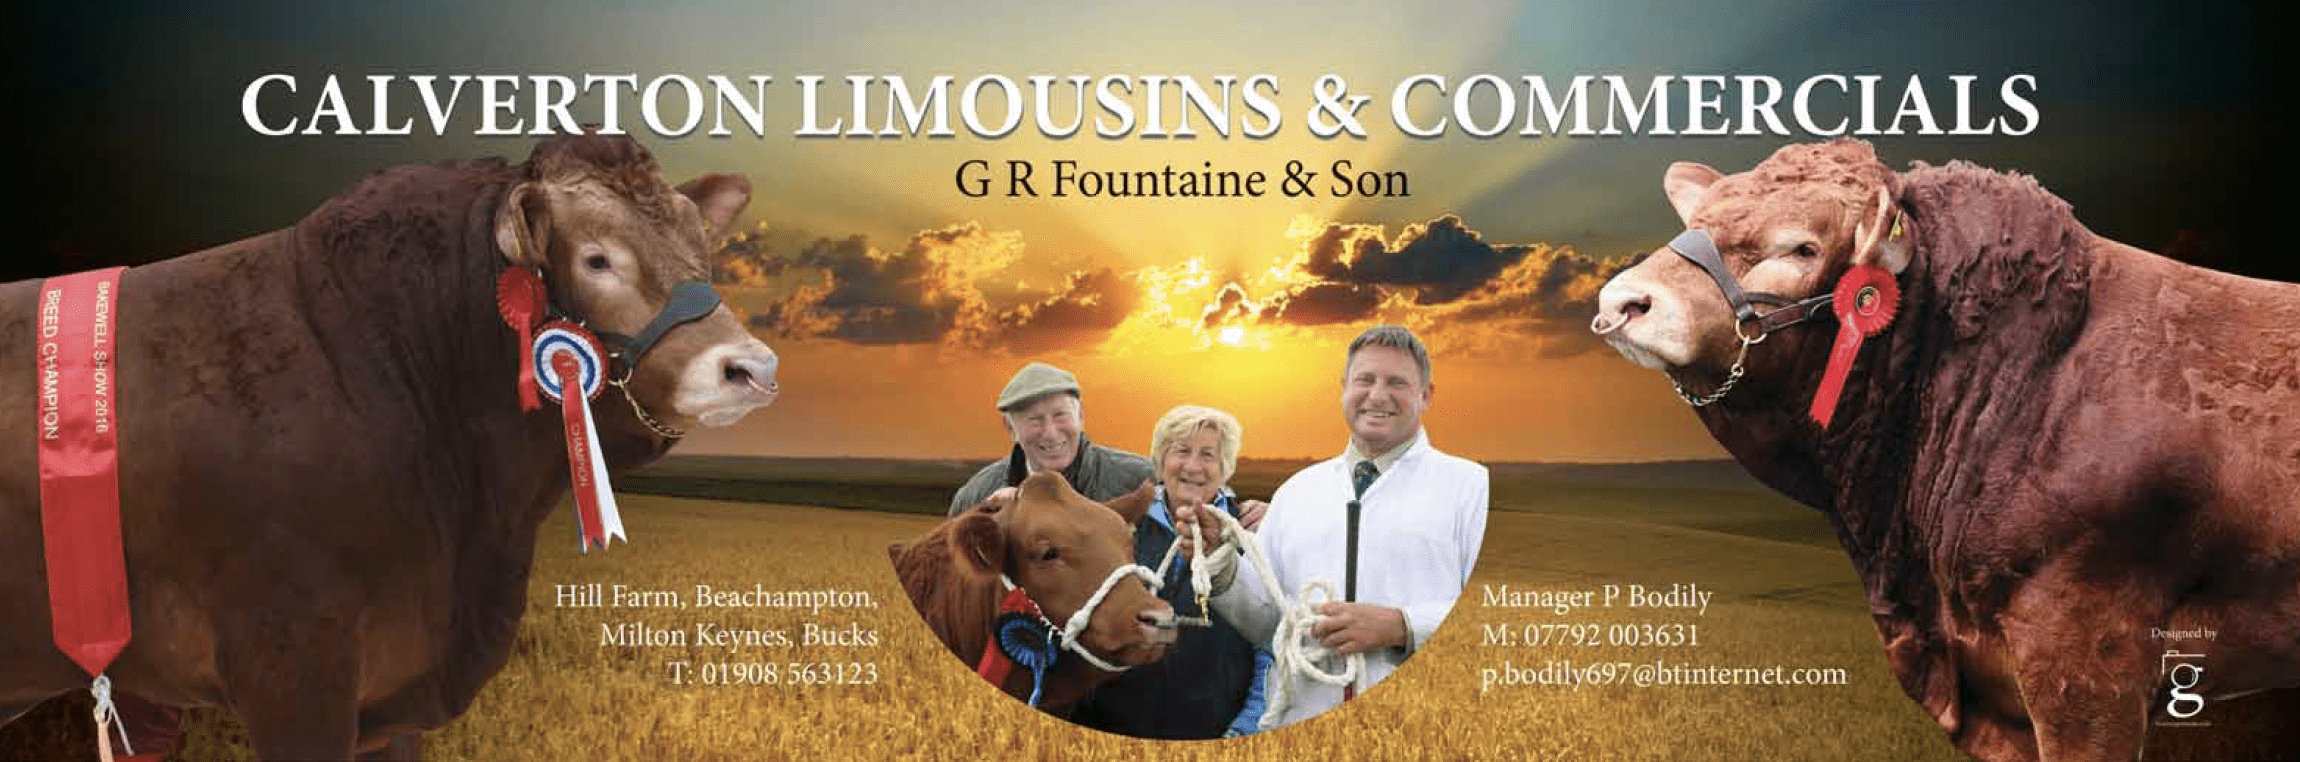 Banner design for Calverton Limousins and Show Cattle